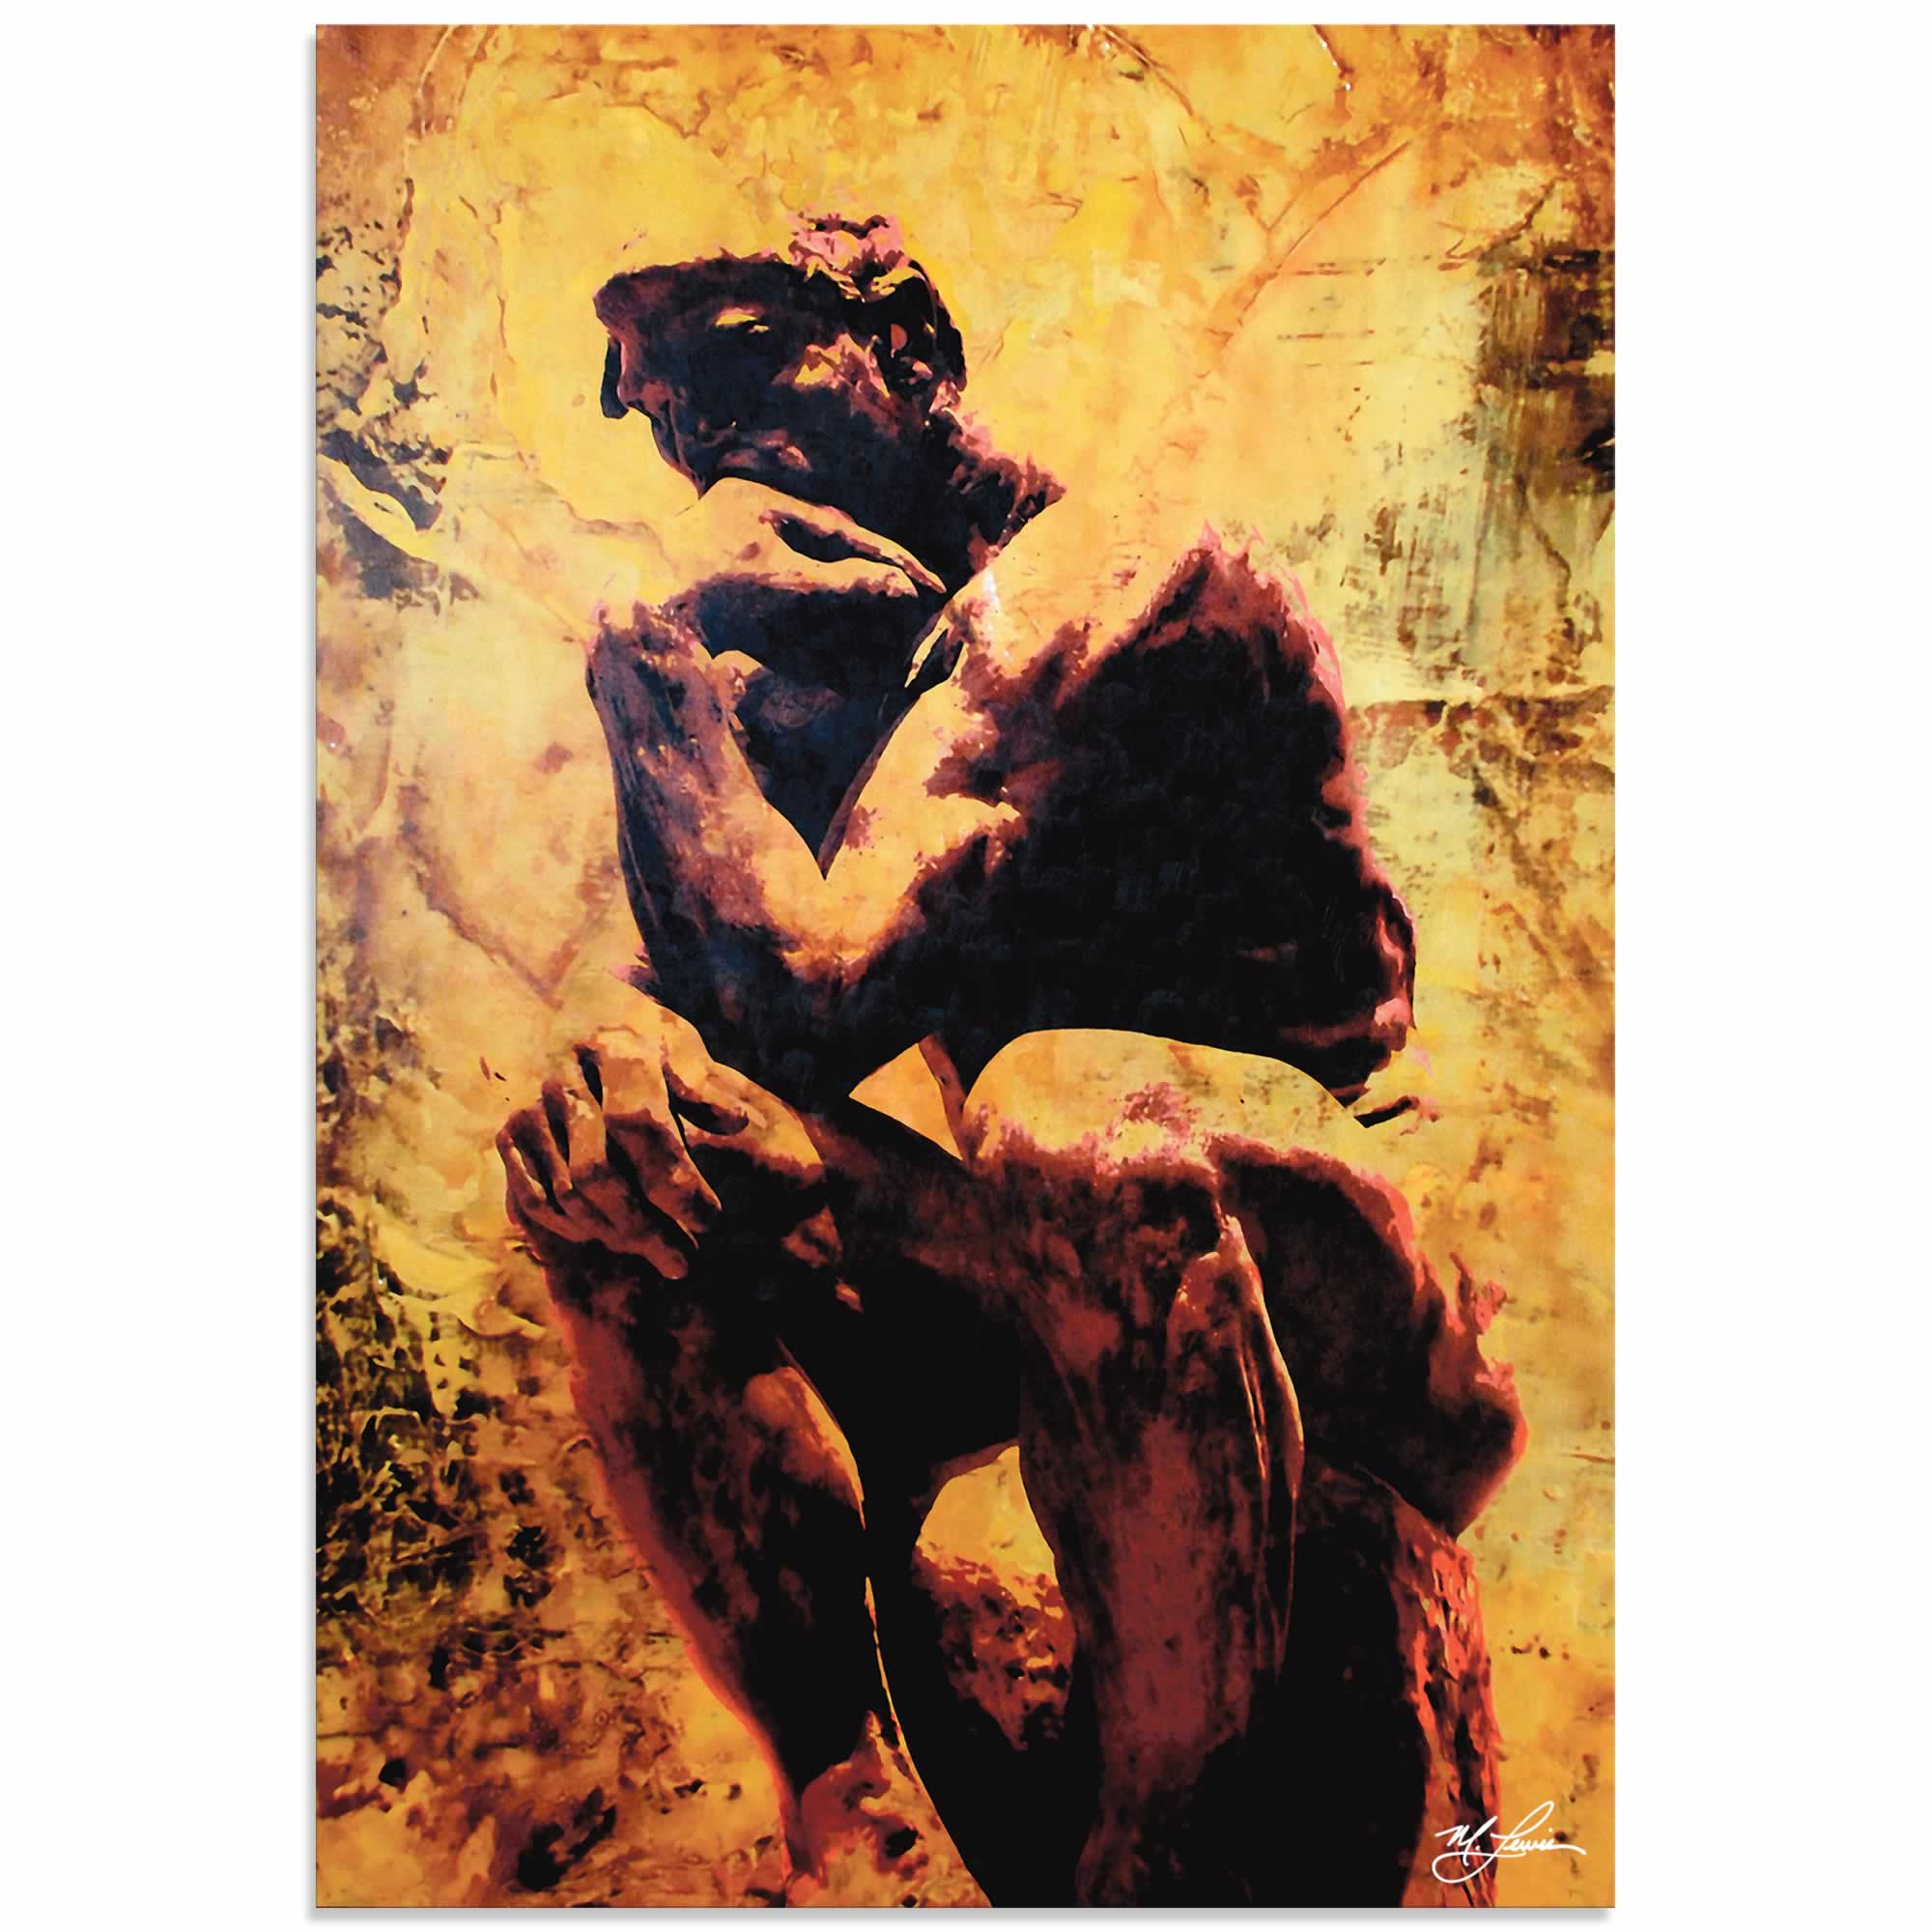 Mark Lewis 'Rodin Clarified Thought' Limited Edition Pop Art Print on Metal or Acrylic